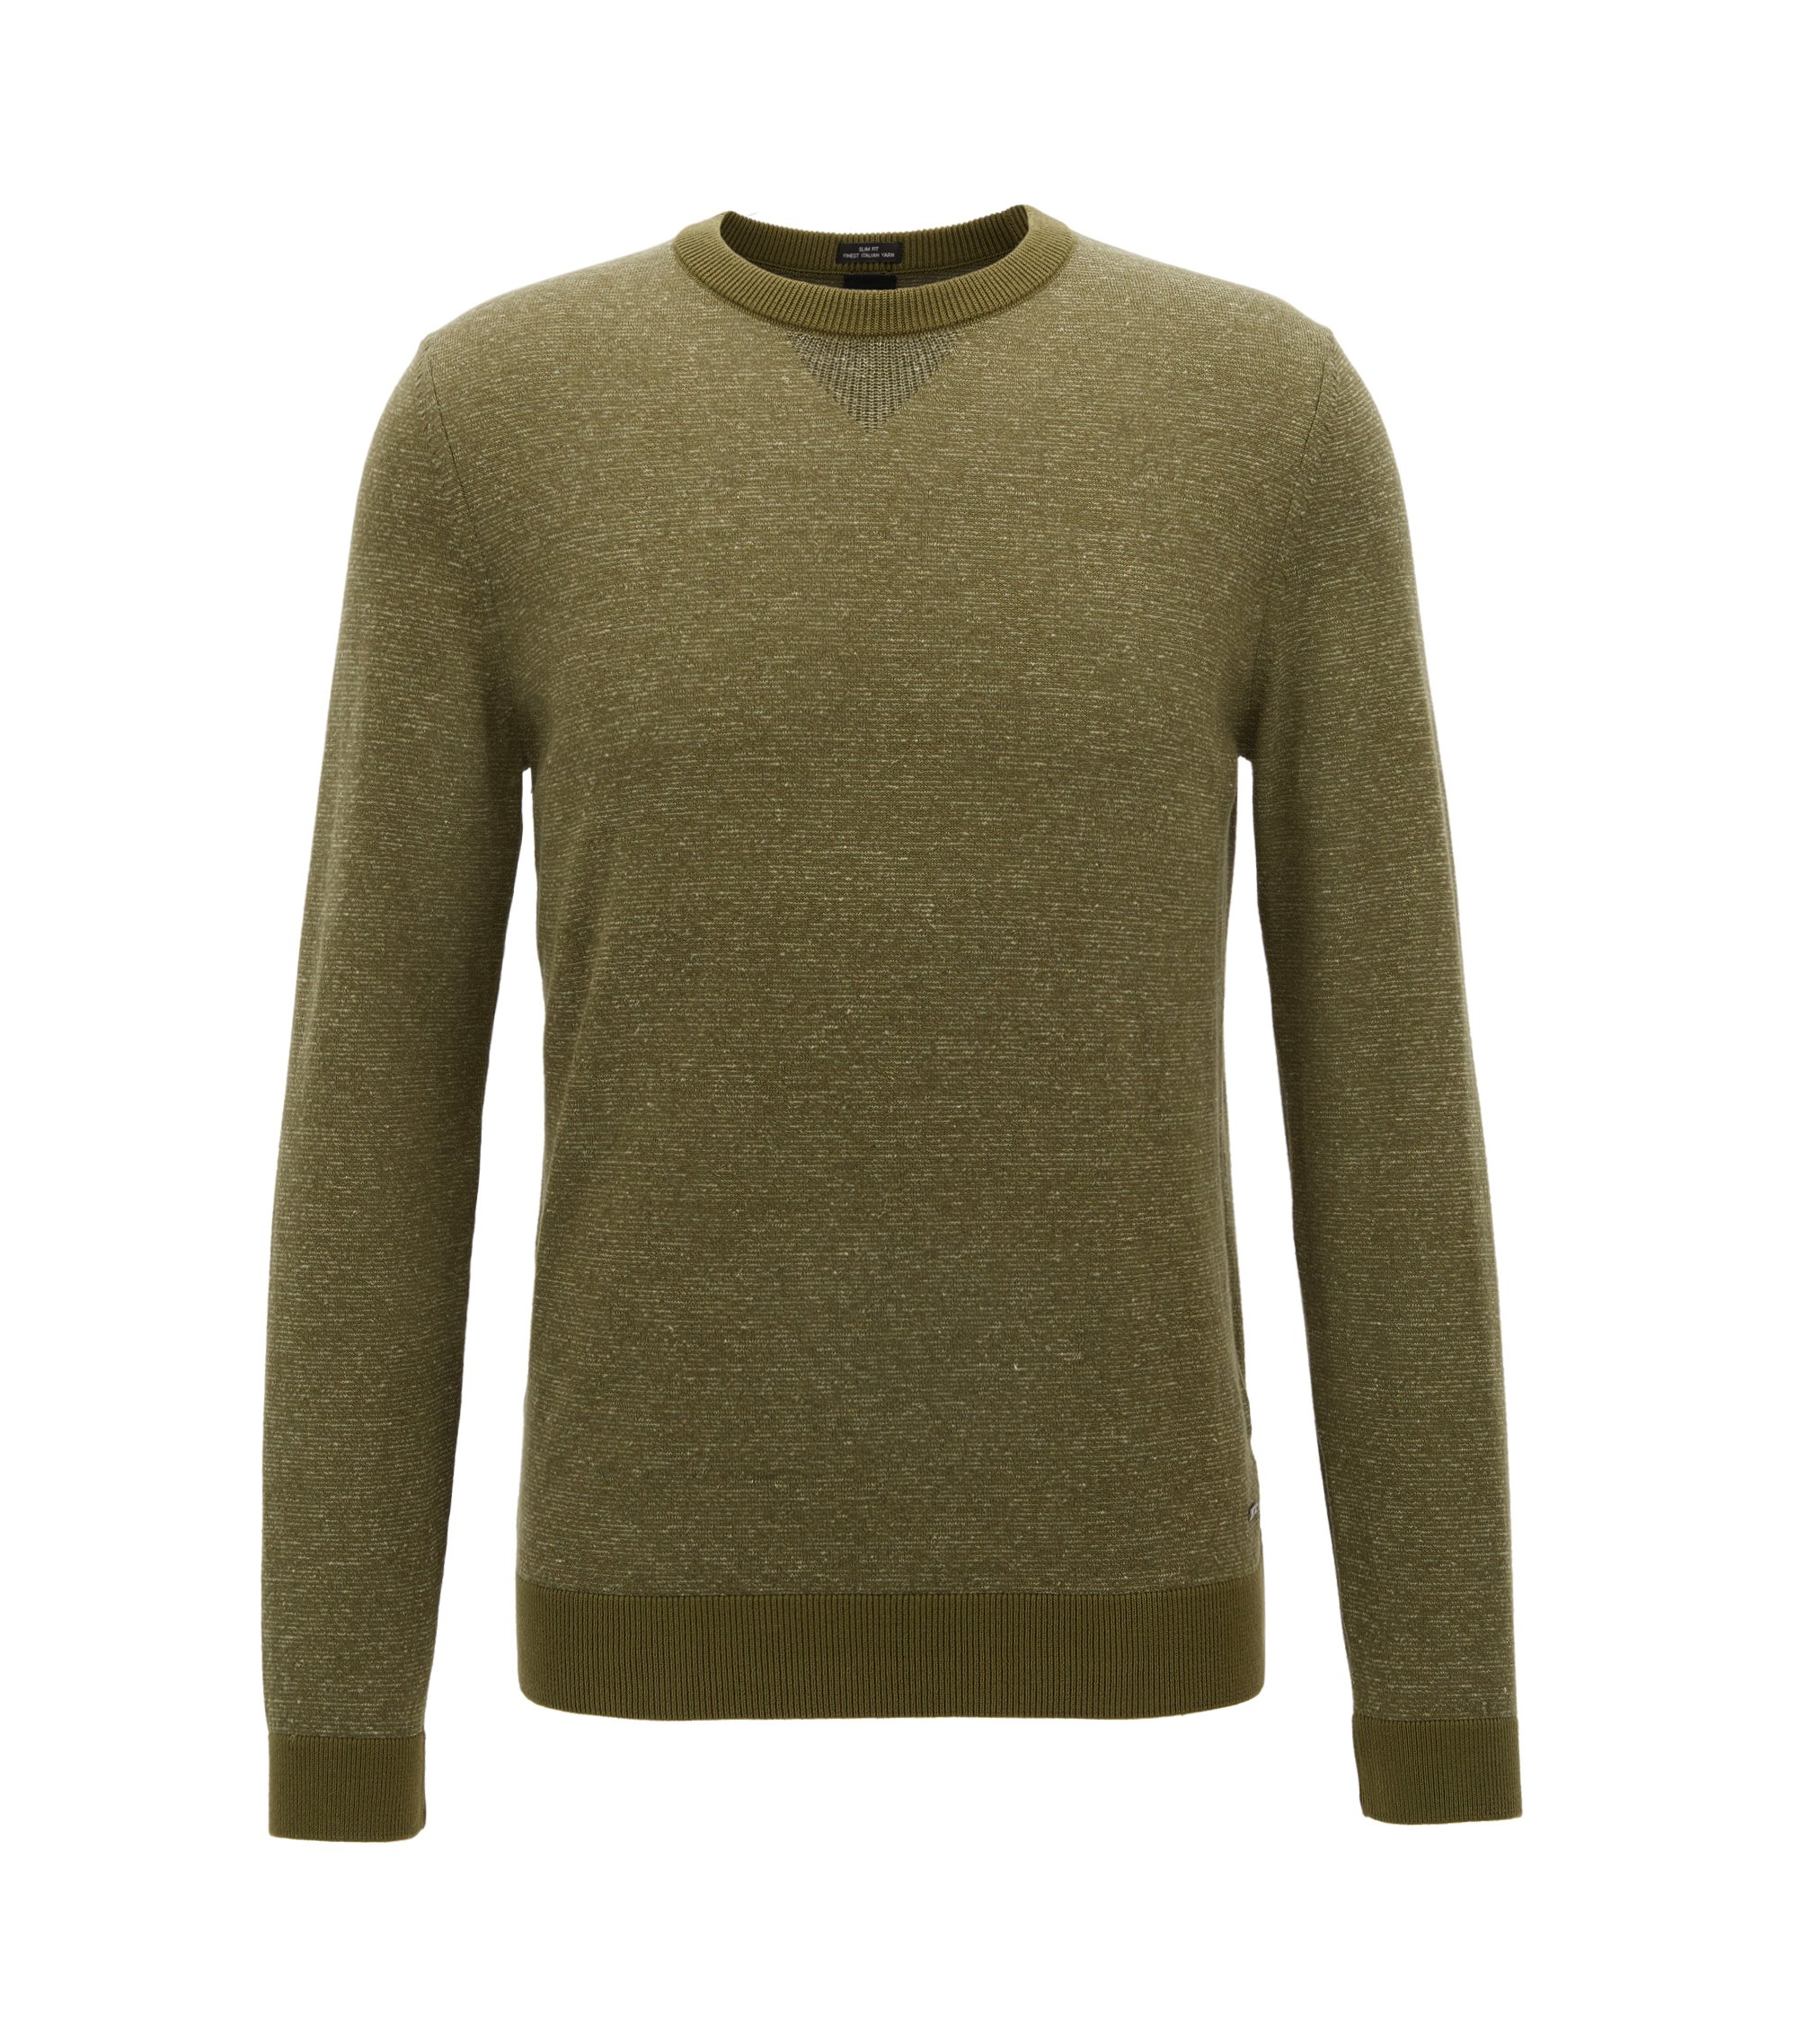 Slim-fit sweater in a mouliné cotton blend, Open Green